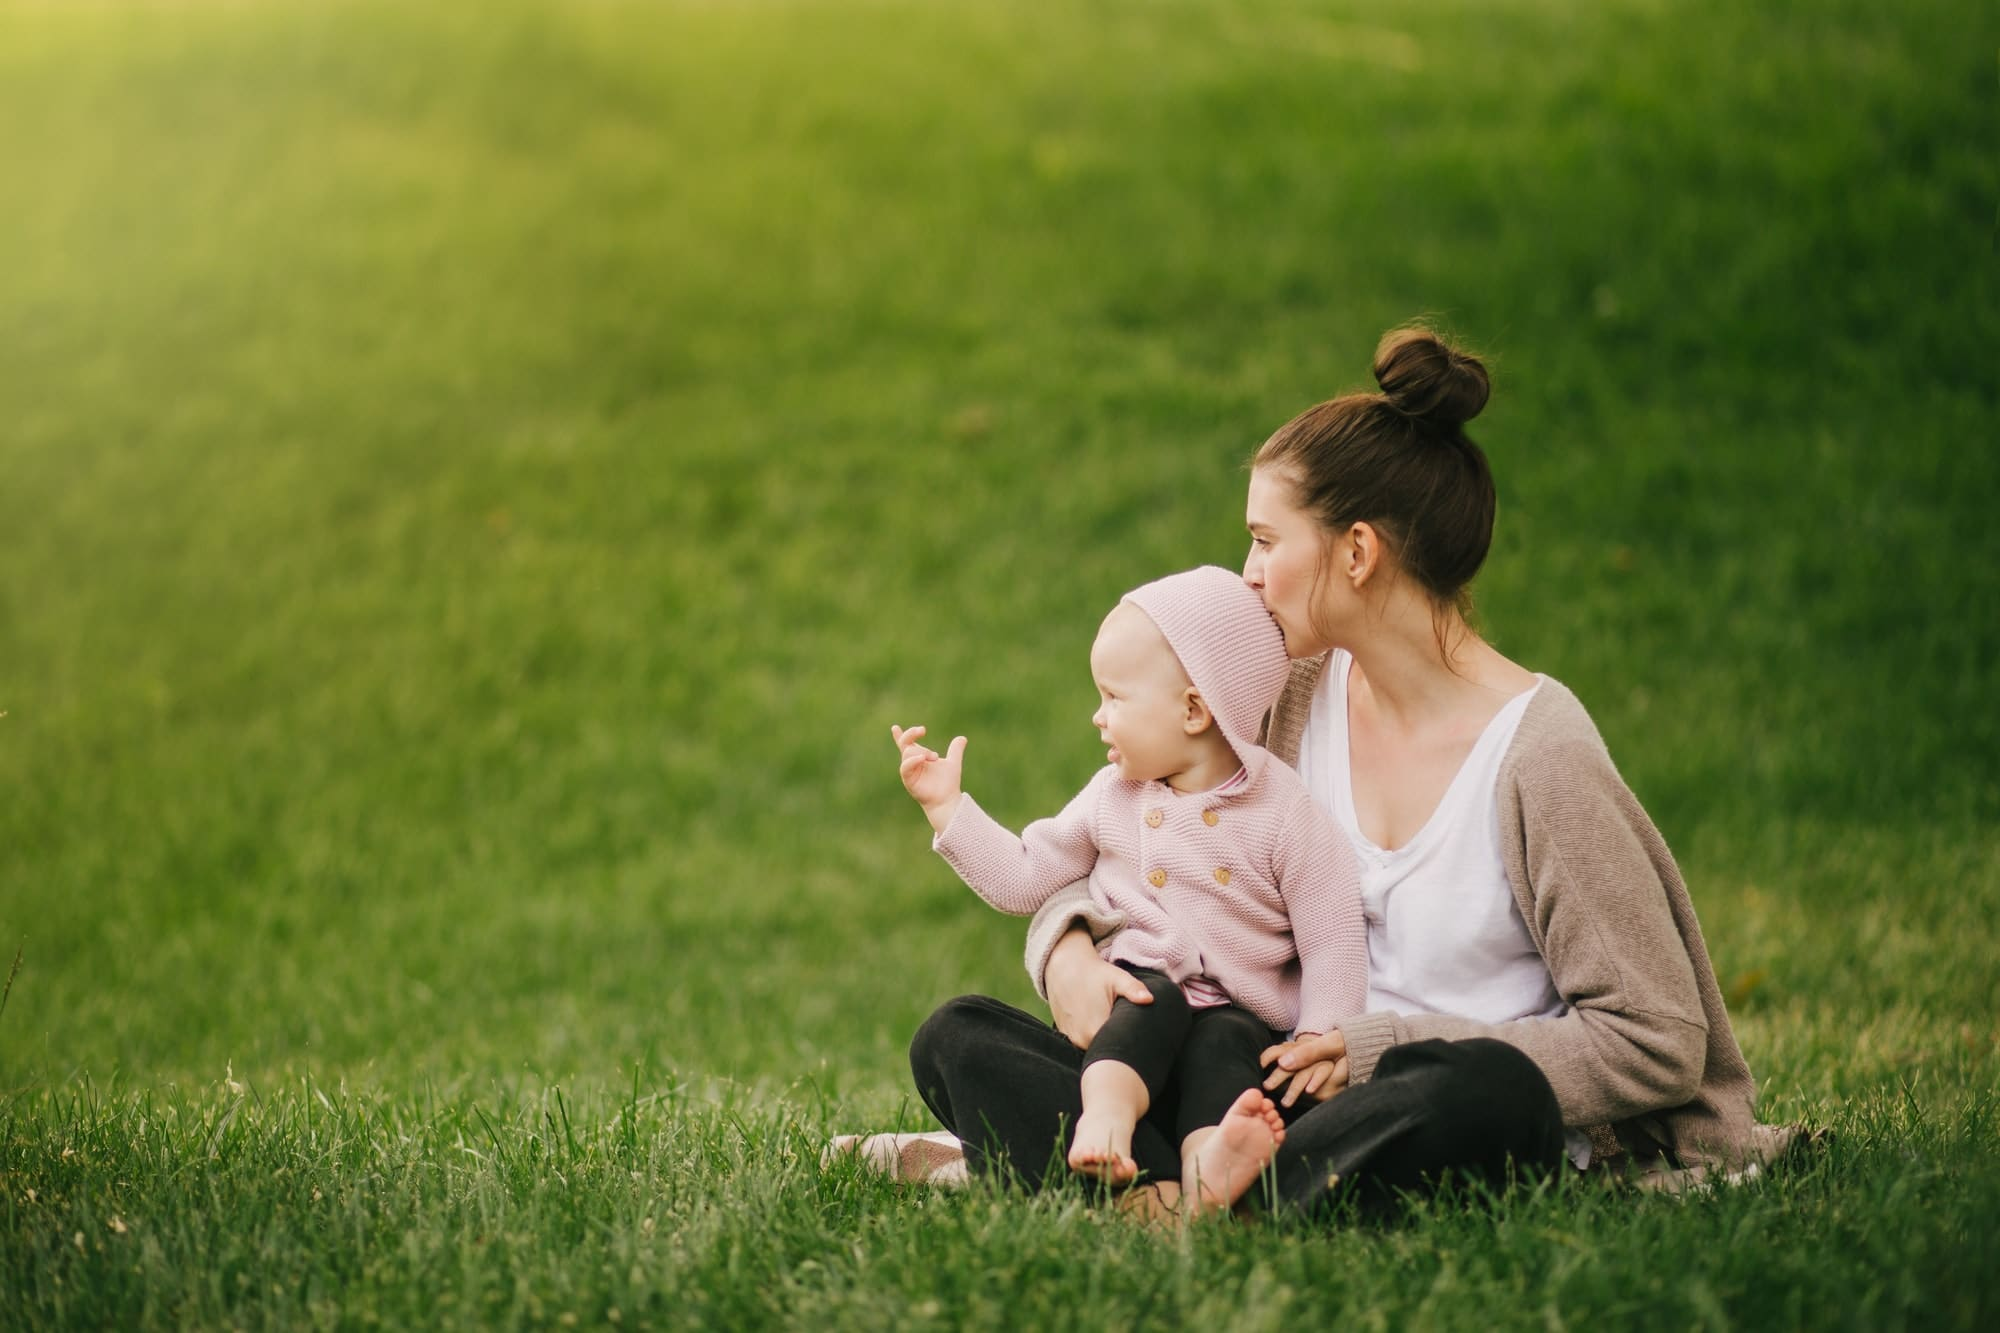 Young mother and her baby relaxing on green lawn.